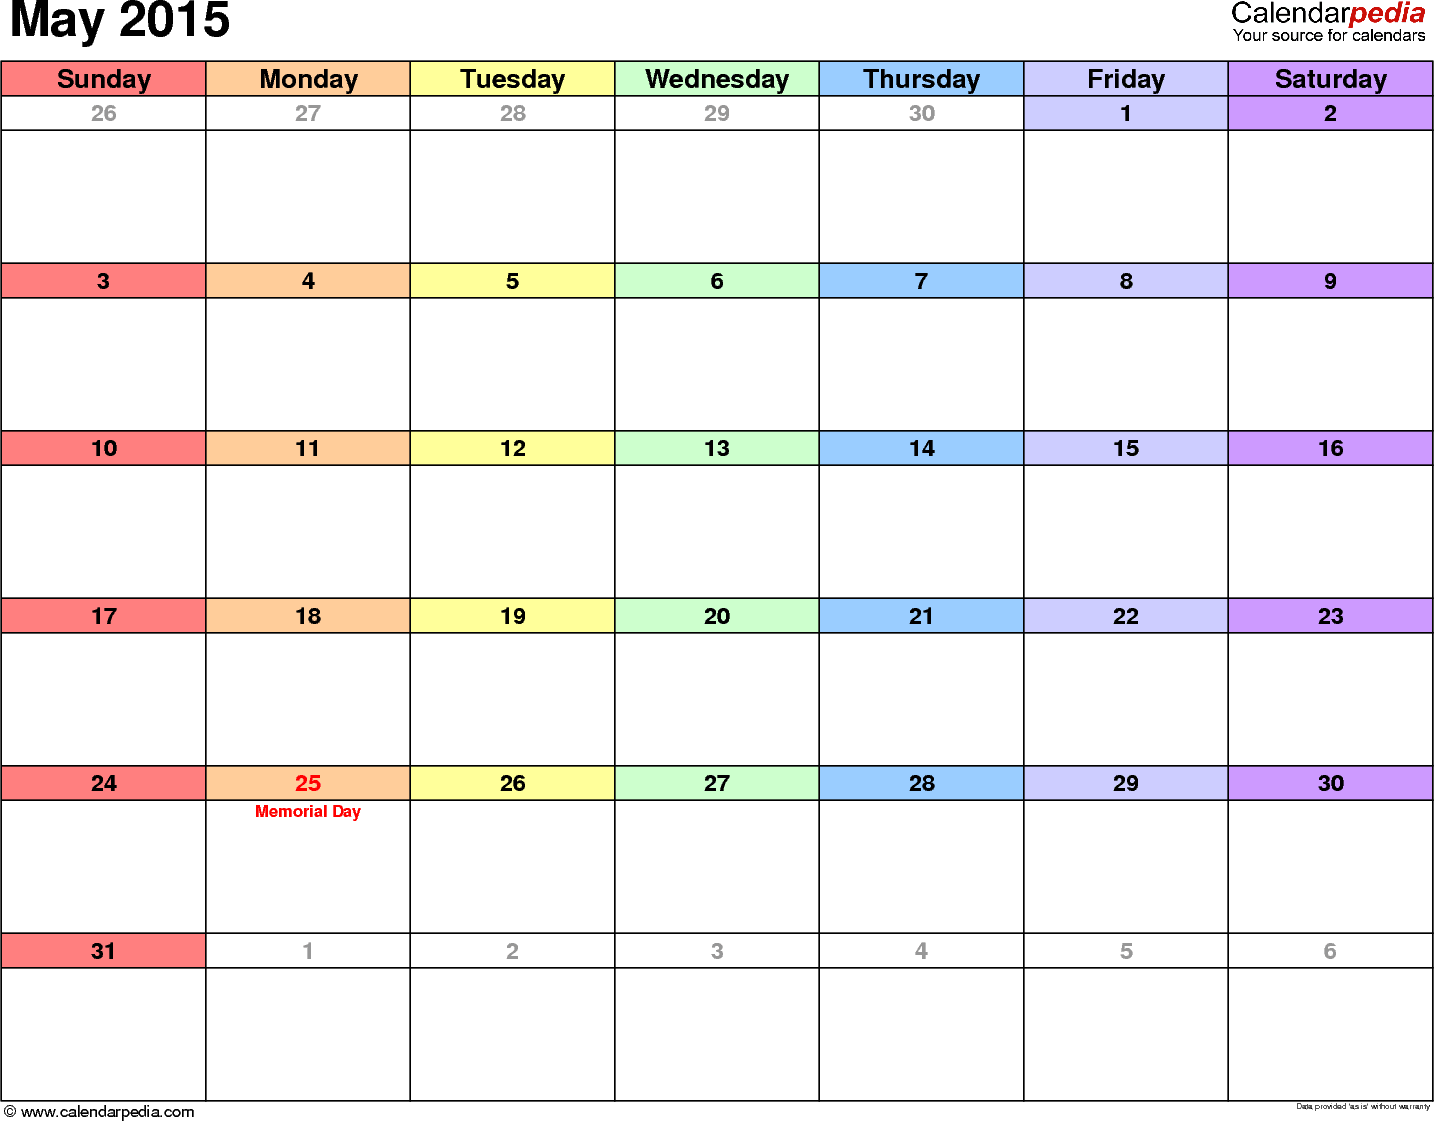 May 2015 calendar printable template